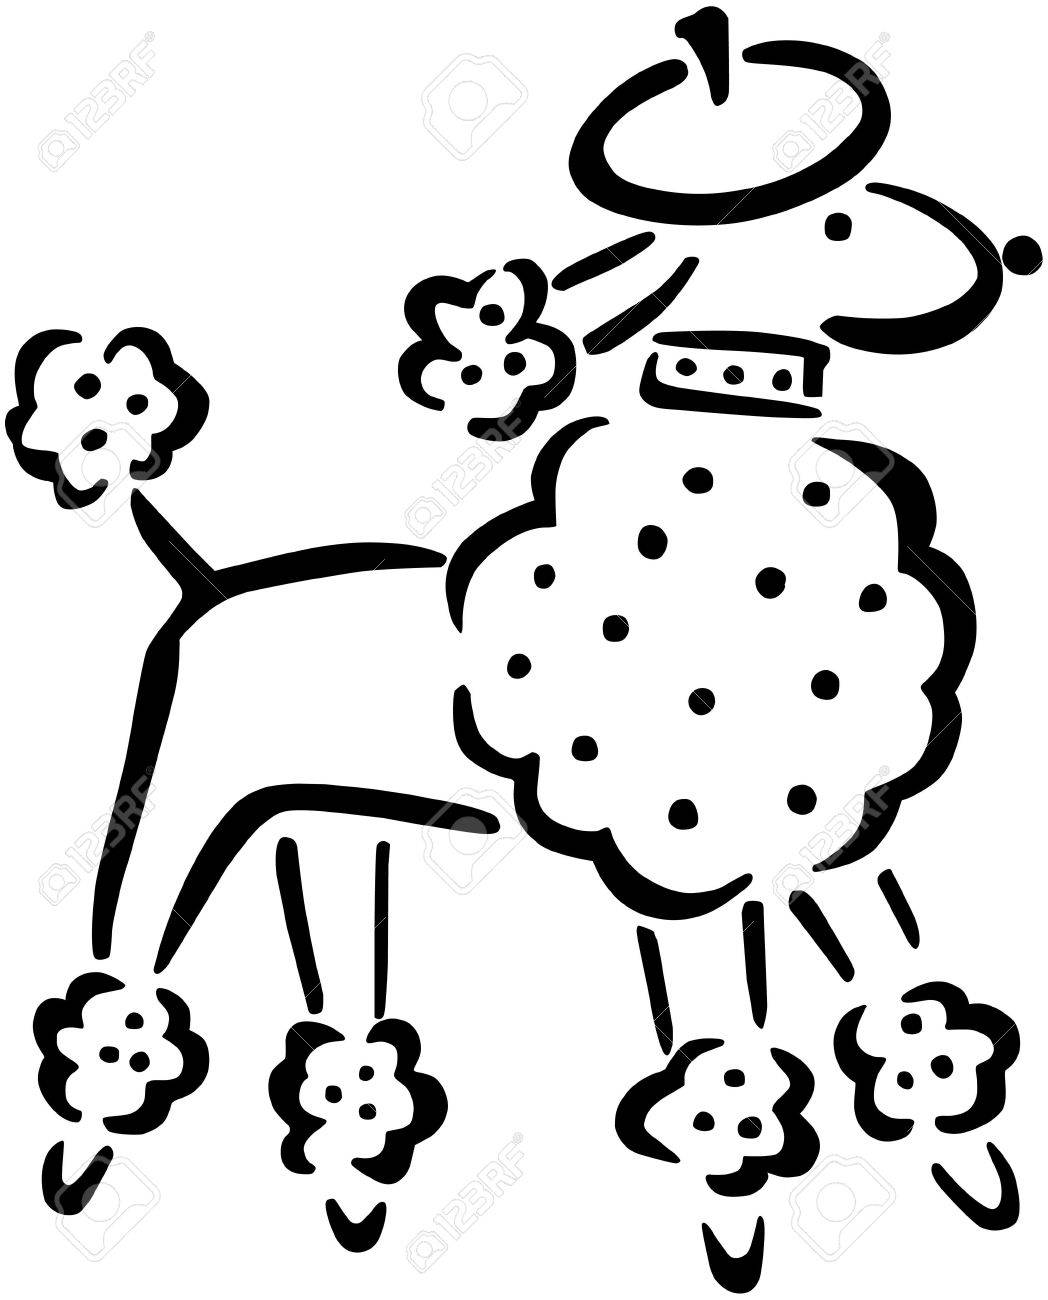 french poodle royalty free cliparts vectors and stock illustration rh 123rf com French Poodle Cartoon french poodle clipart